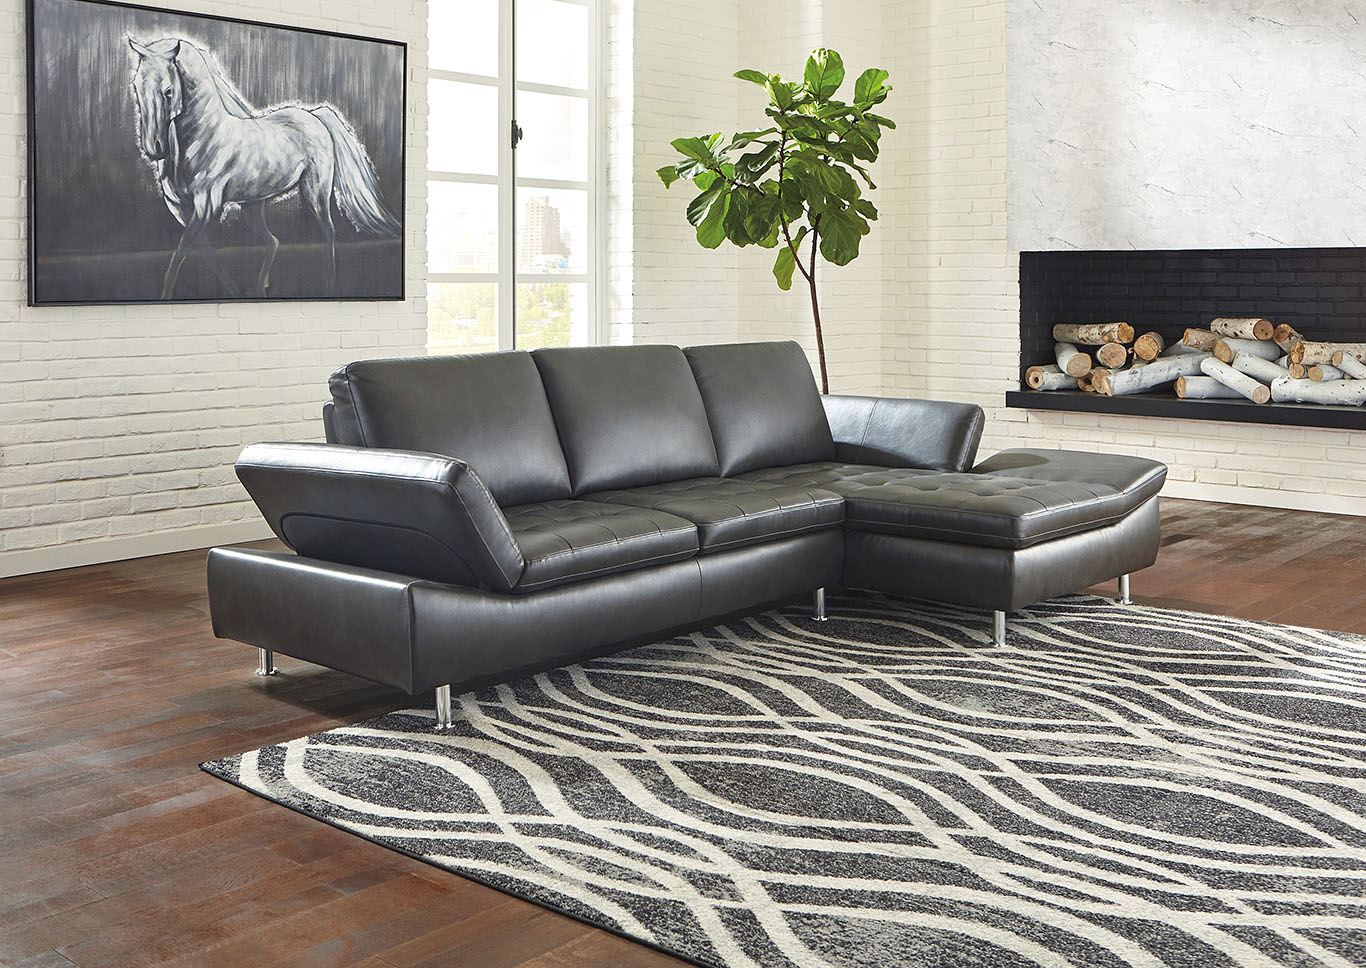 Carrnew Gray Left-Arm Facing Sofa Chaise,Signature Design By Ashley